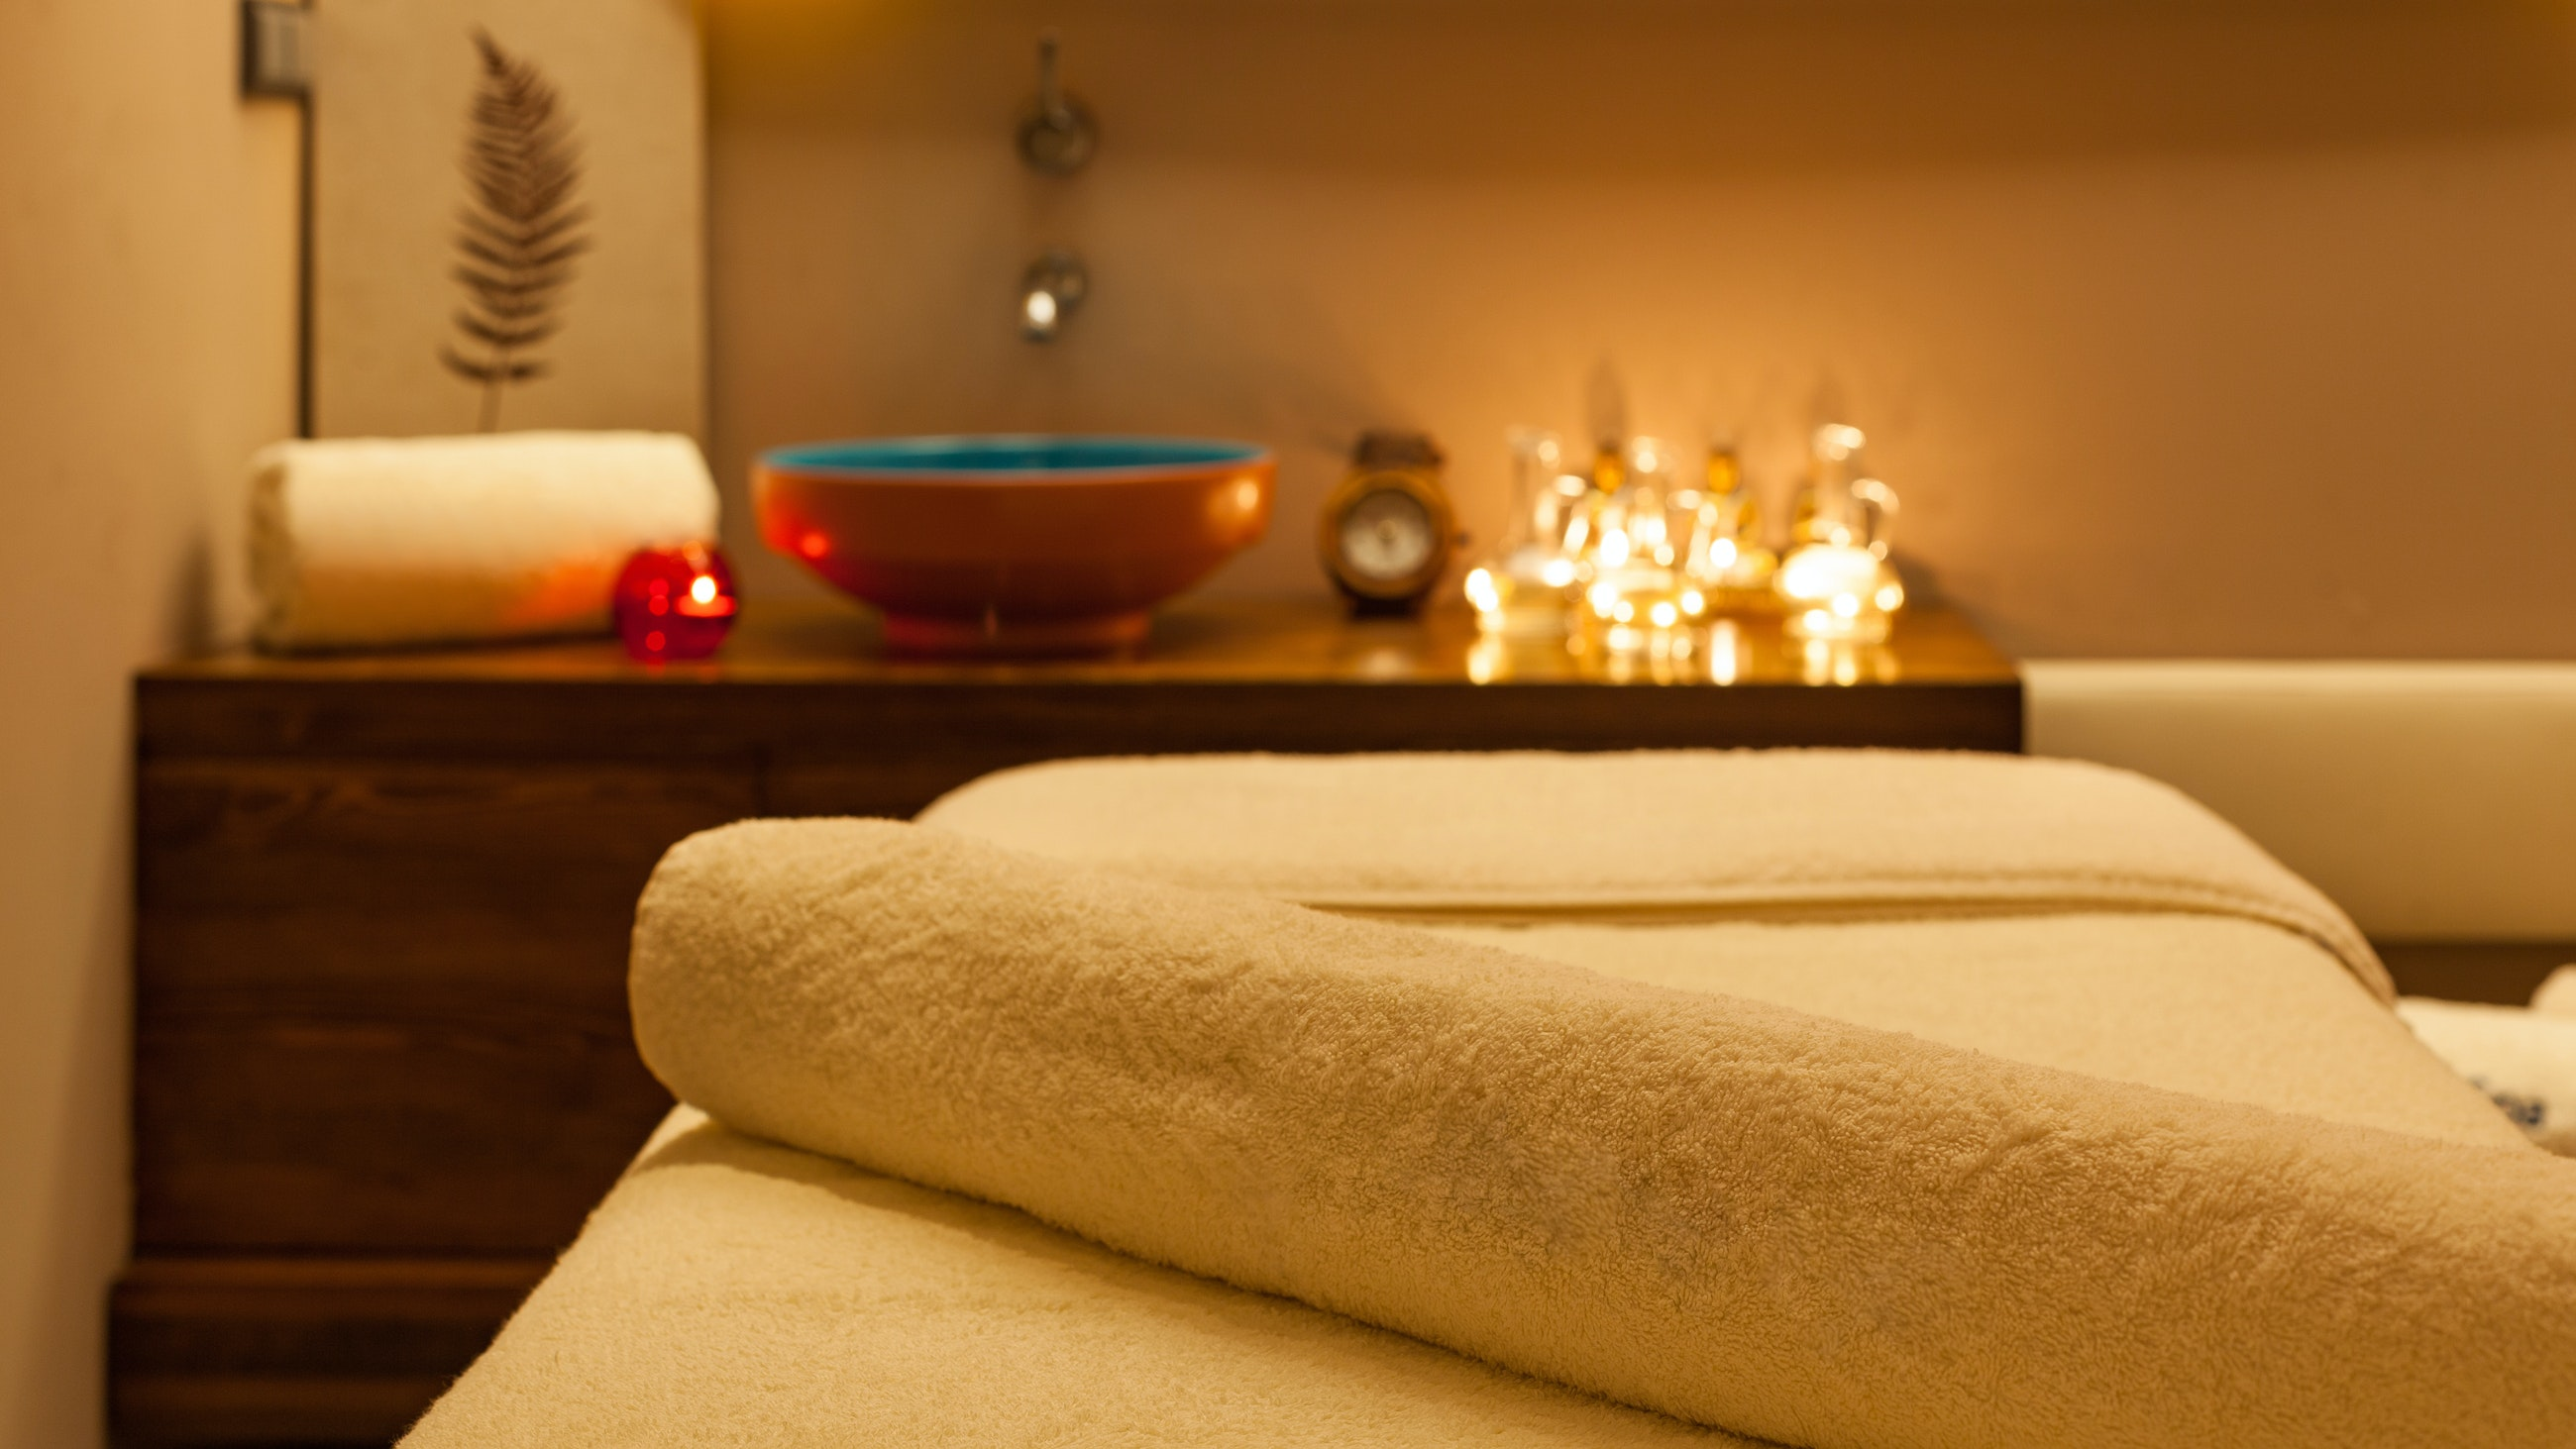 Winter spa treatment with towels